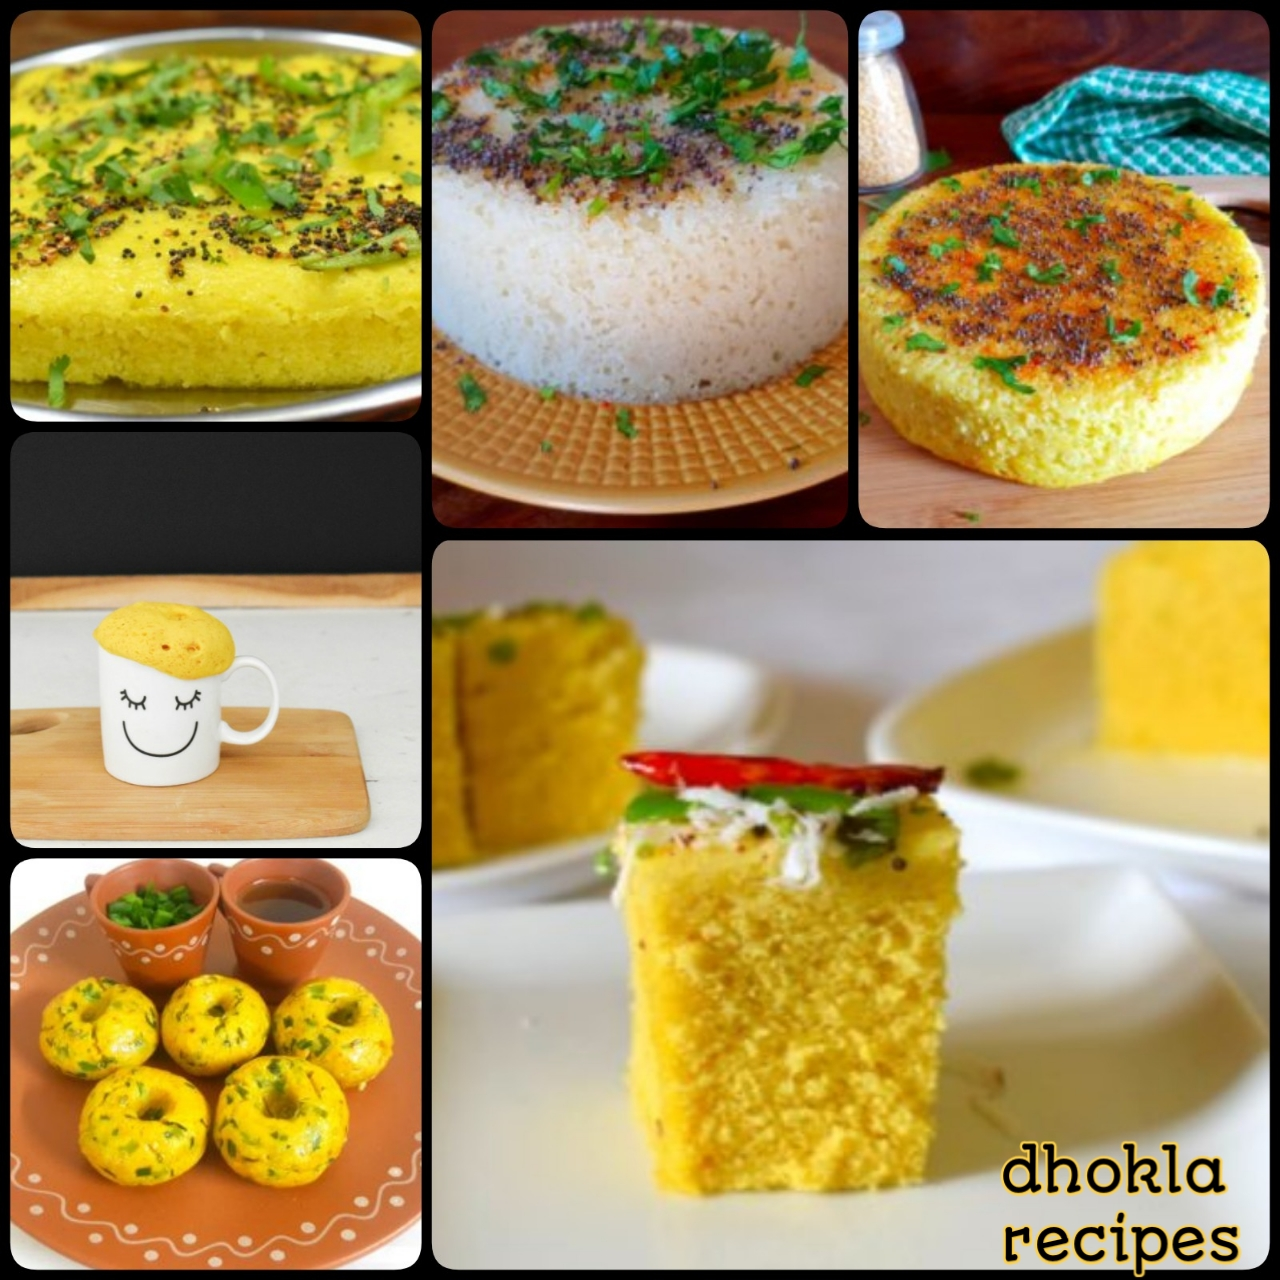 dhokla recipes